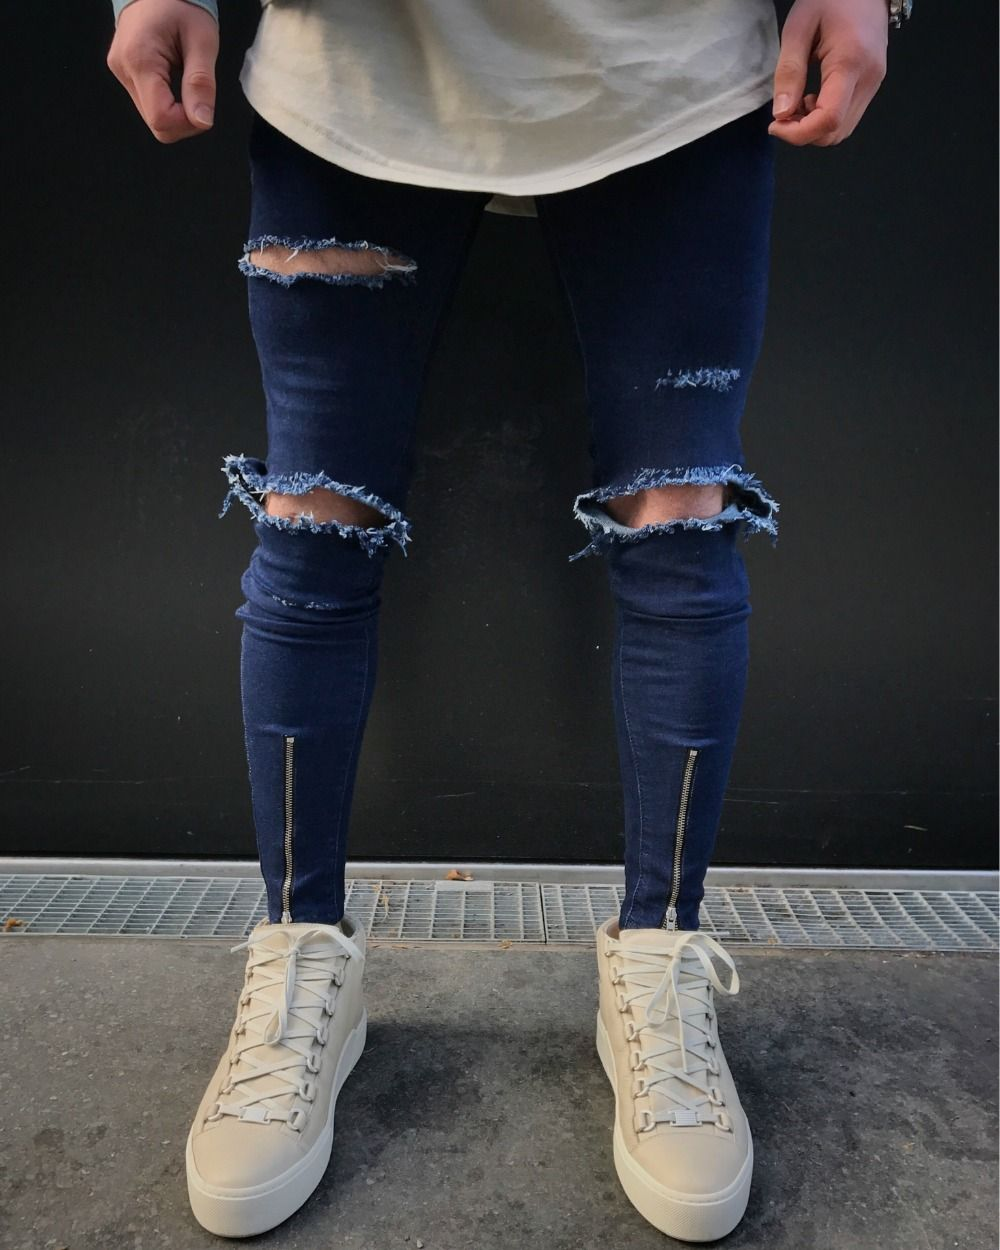 b801eef6663 Wholesale 2019 Fashion Casual Hip Hop Knee Hole Monkey Wash Zipper Leg High  Street Motorcycle Biker Denim Blue Skinny Jeans Men